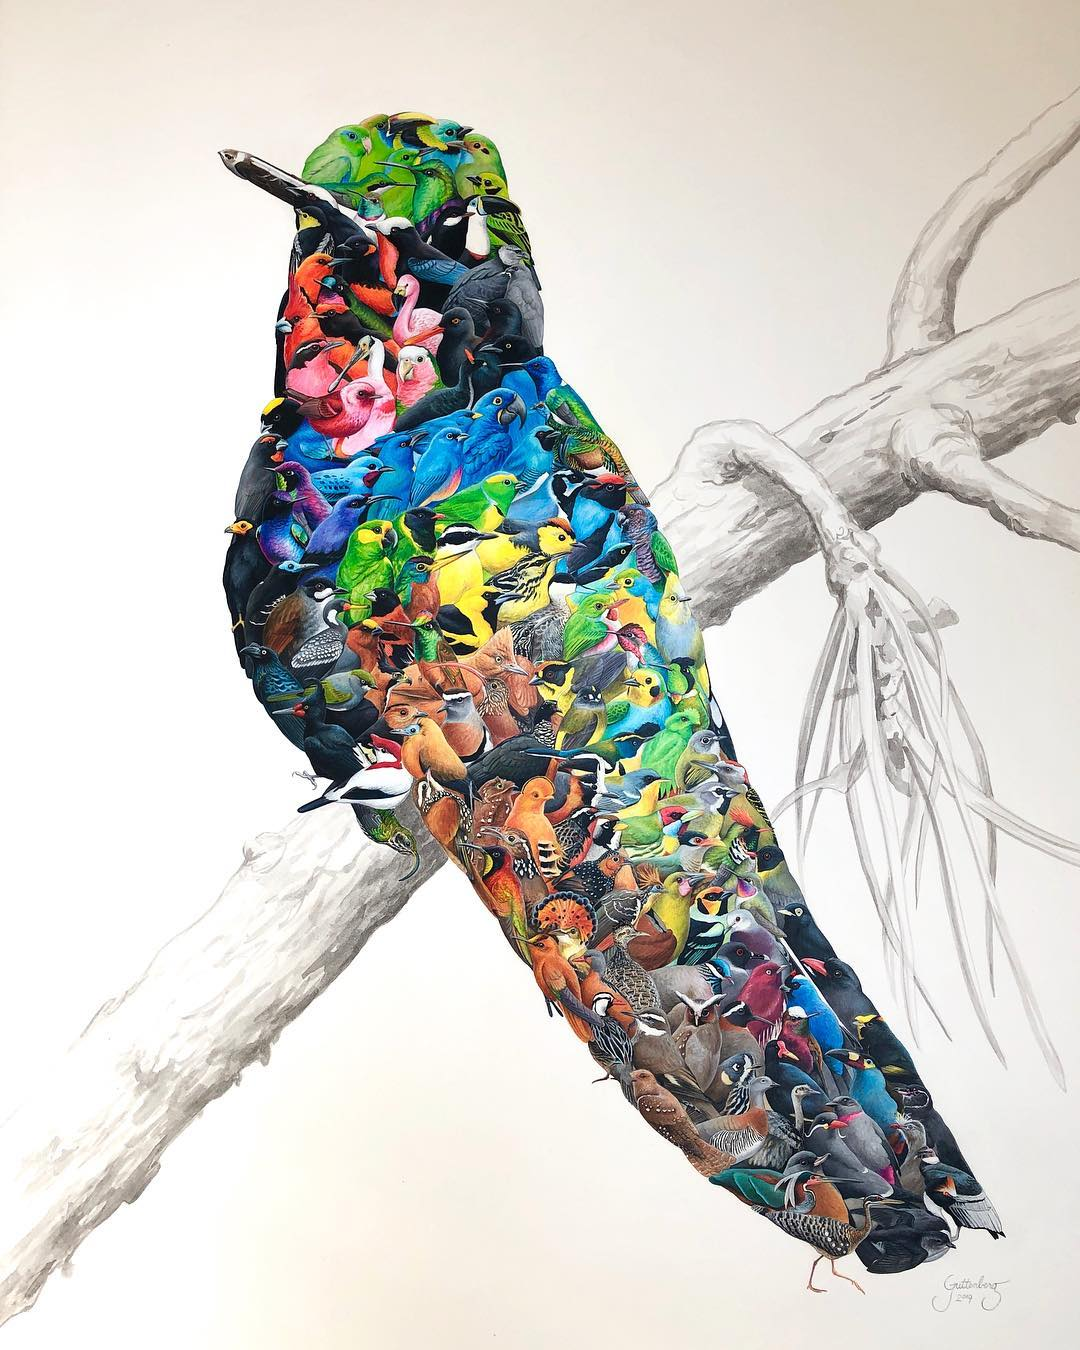 """An incredible piece of art"" - A rising bird artist creates amazing composite bird drawings, from dozens of species of birds"